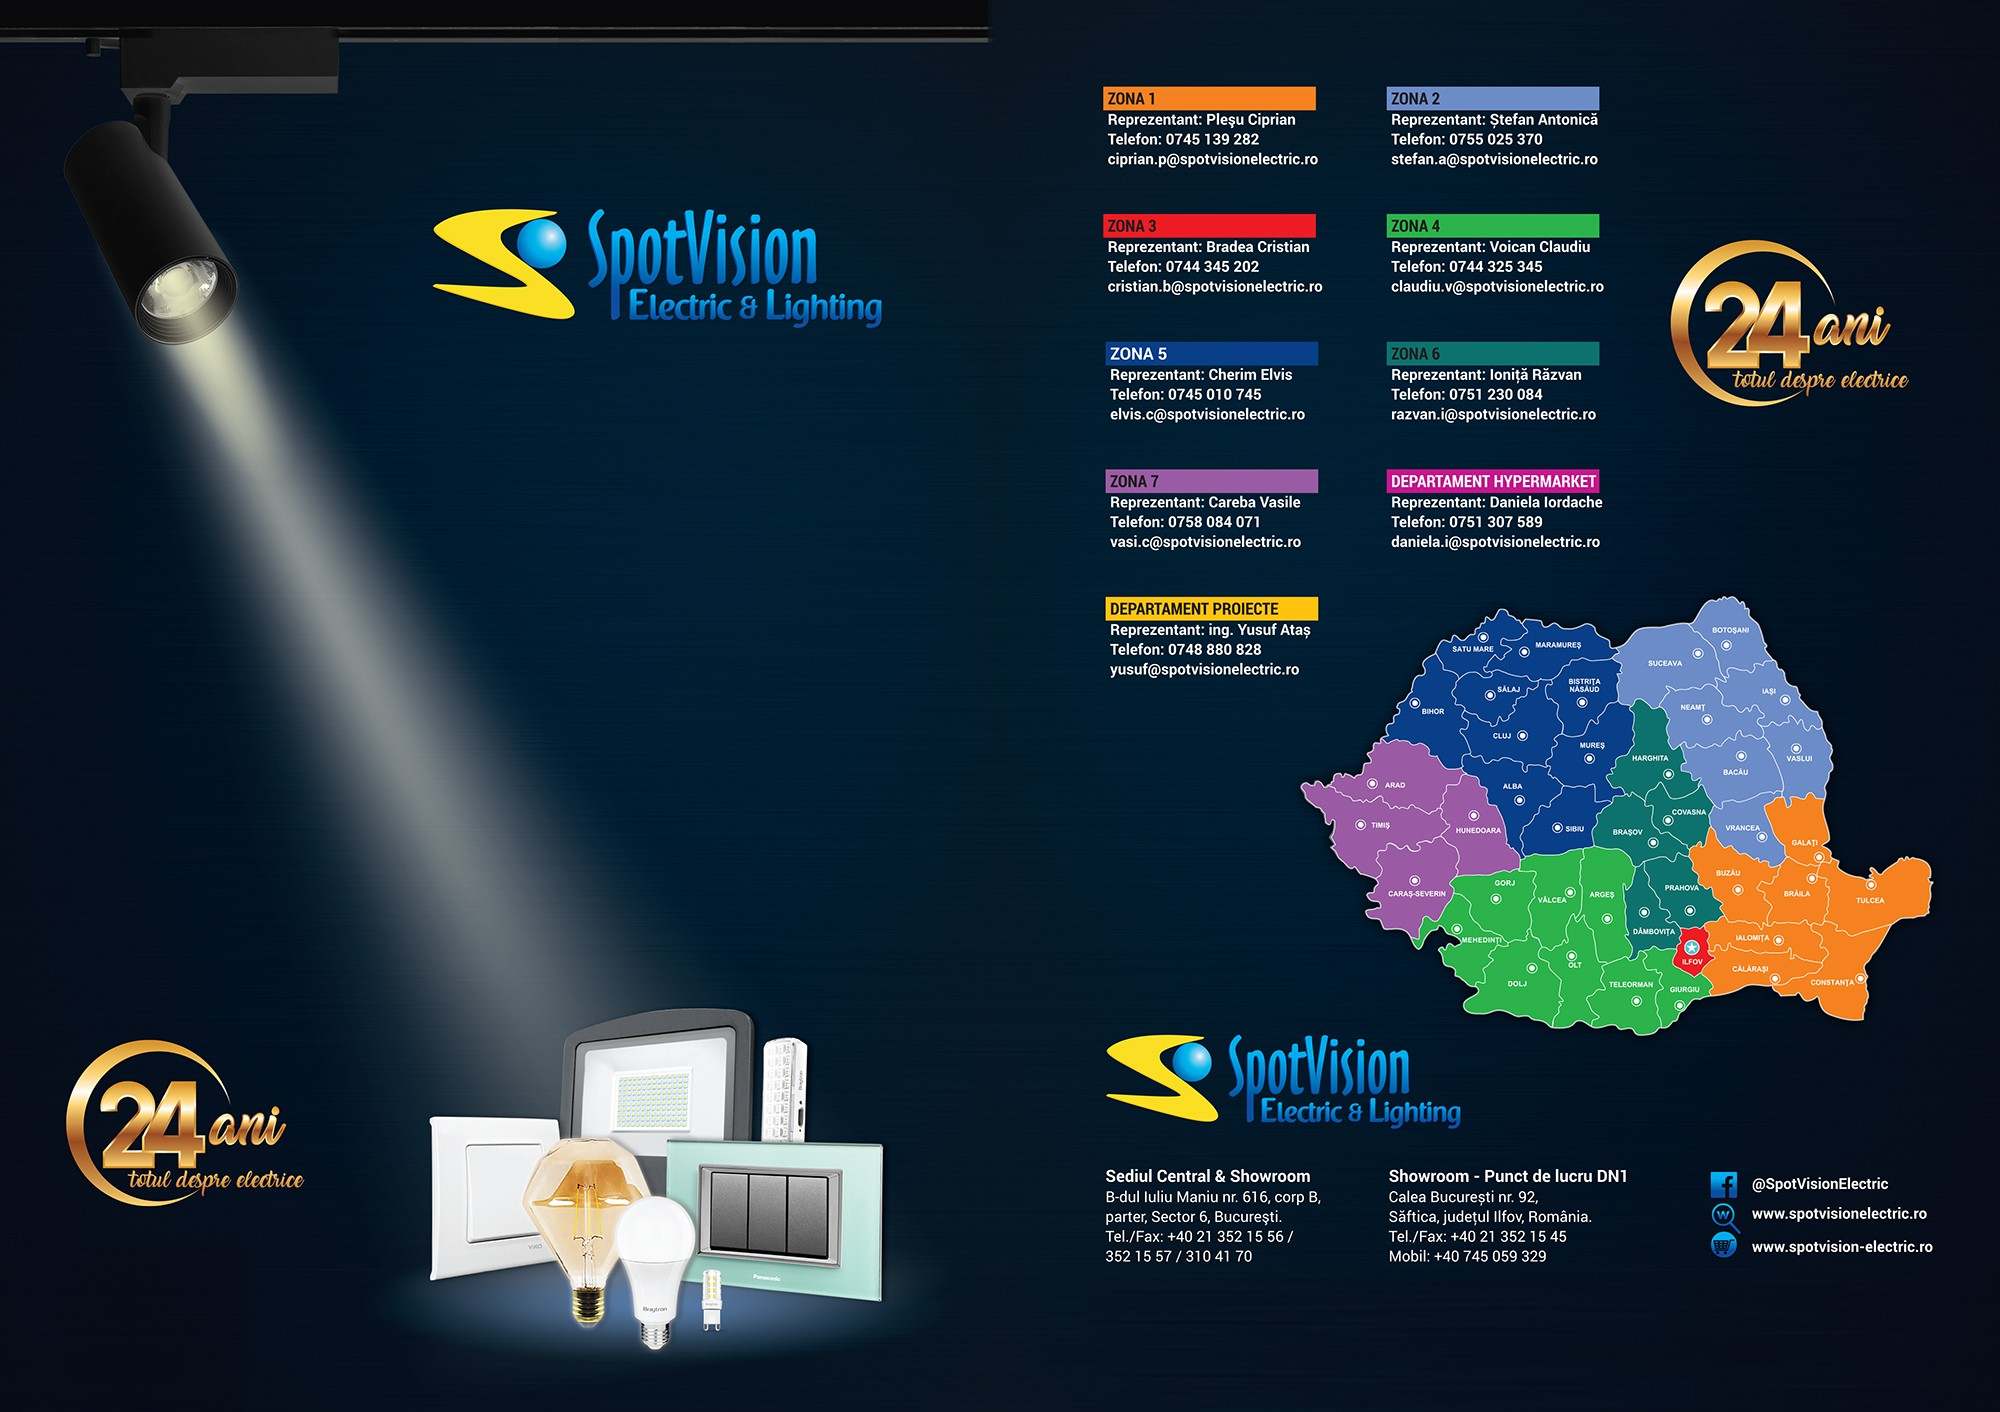 Spot Vision Electric & Lighting